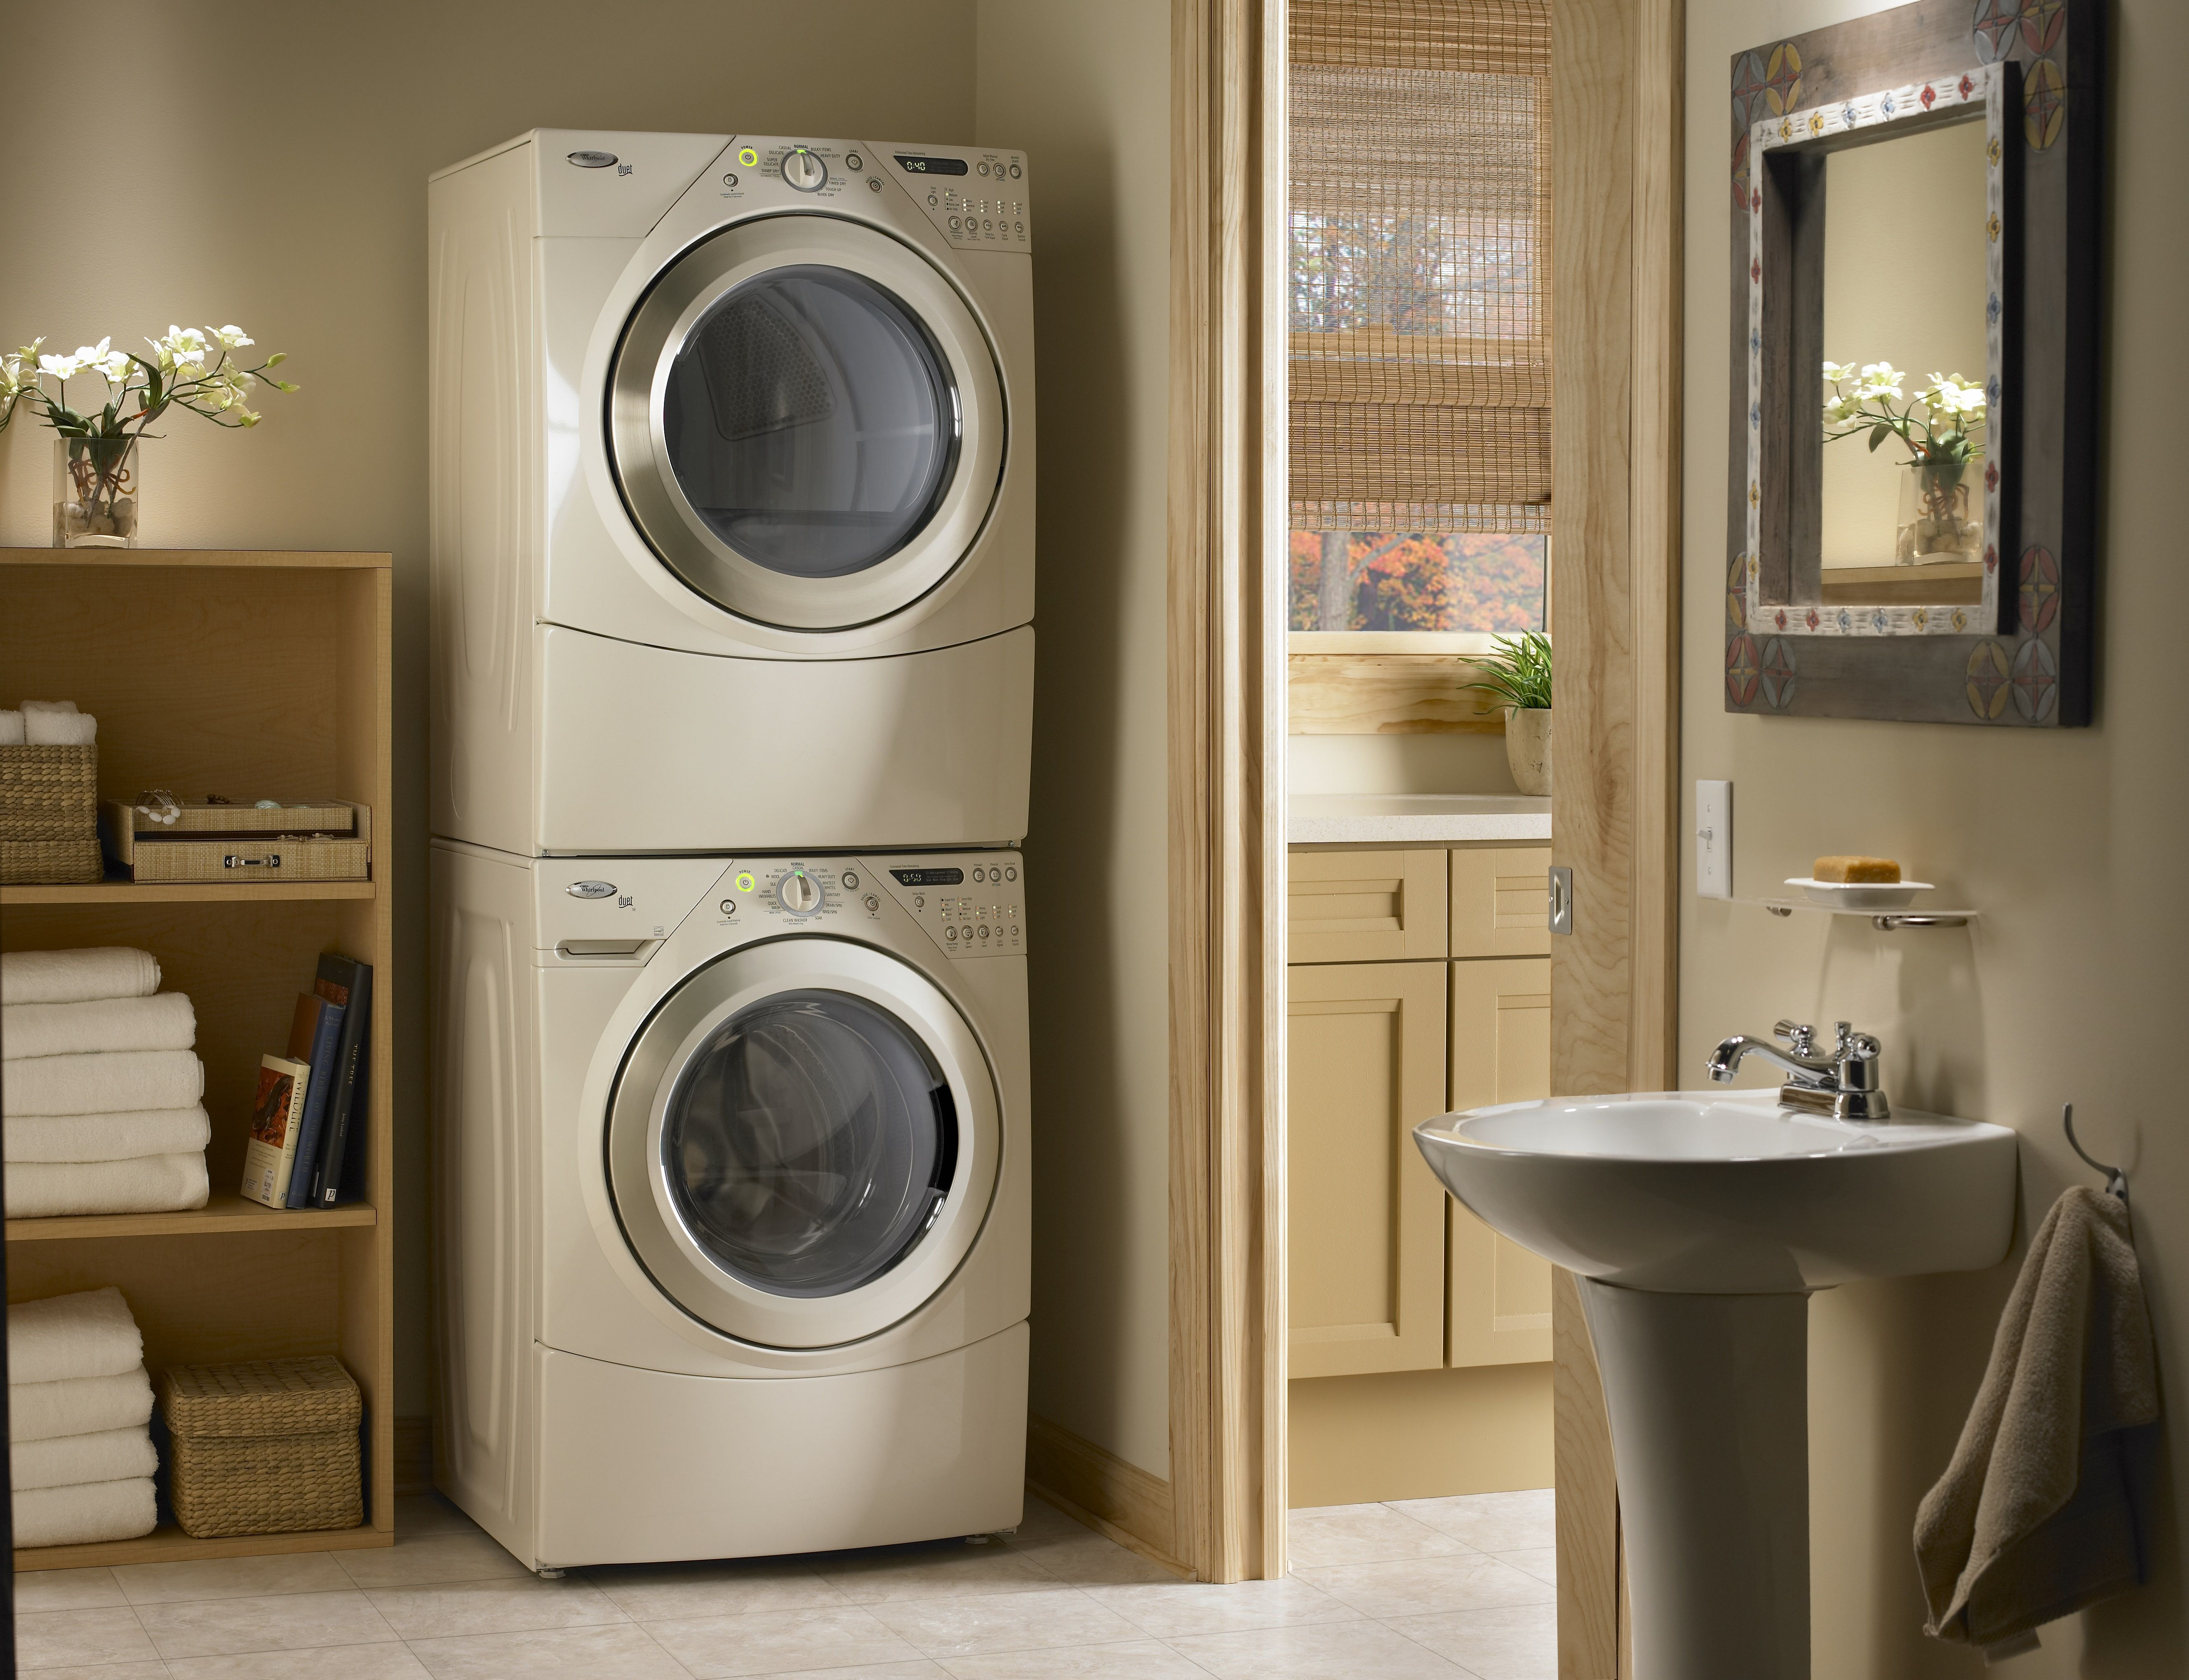 Dryer buying guide | Dryer, Washer and Laundry rooms